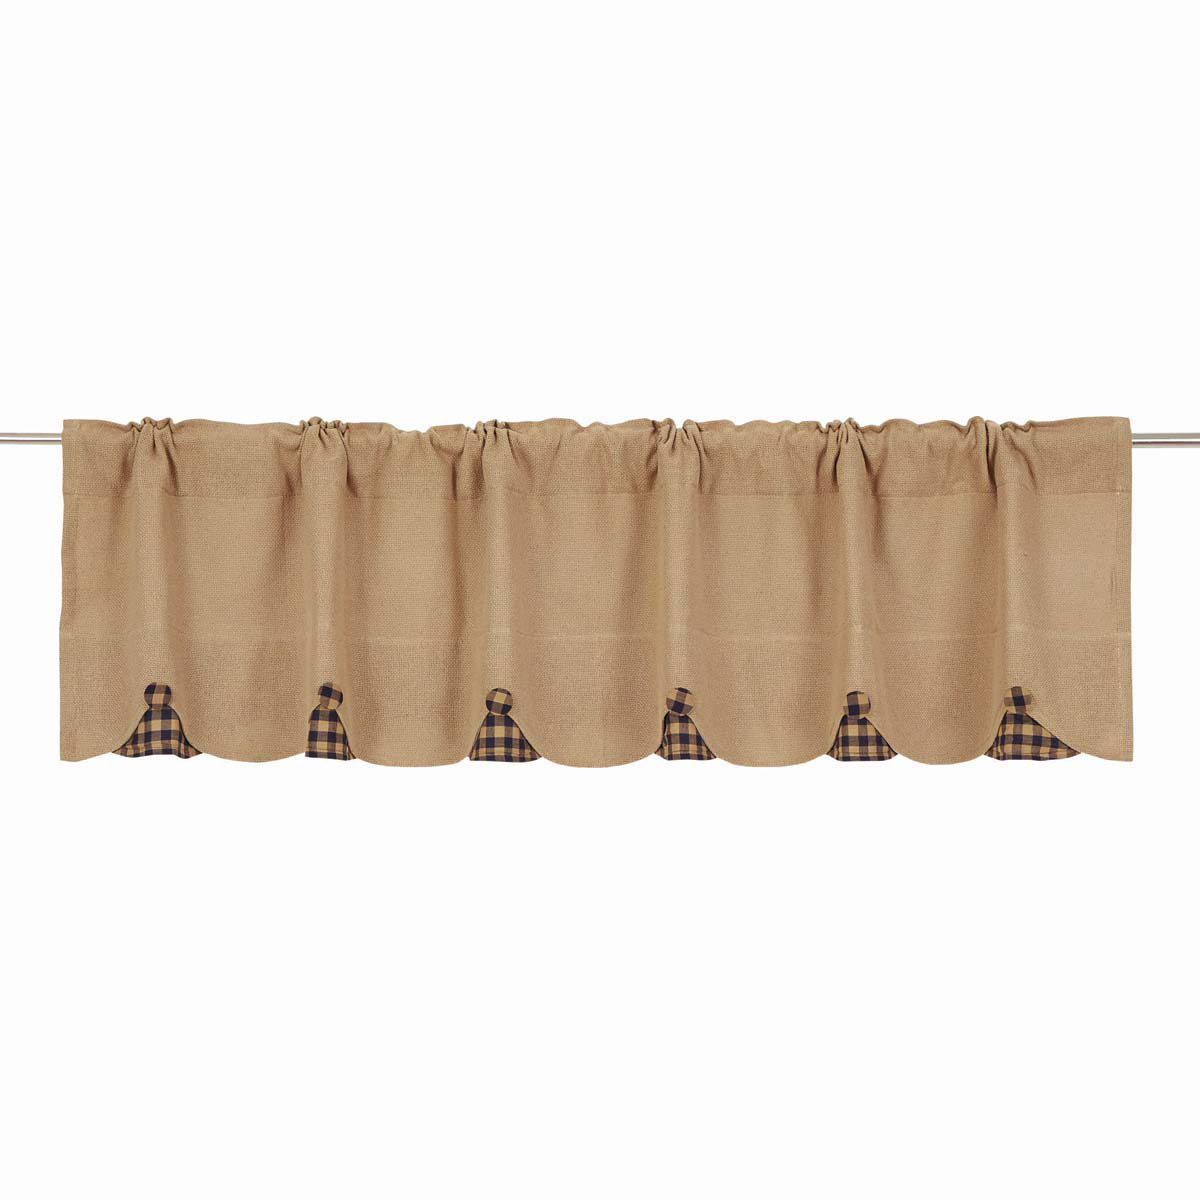 BURLAP NATURAL Valance w/Navy Check - 16x72 - Country Farmhouse - VHC Brands